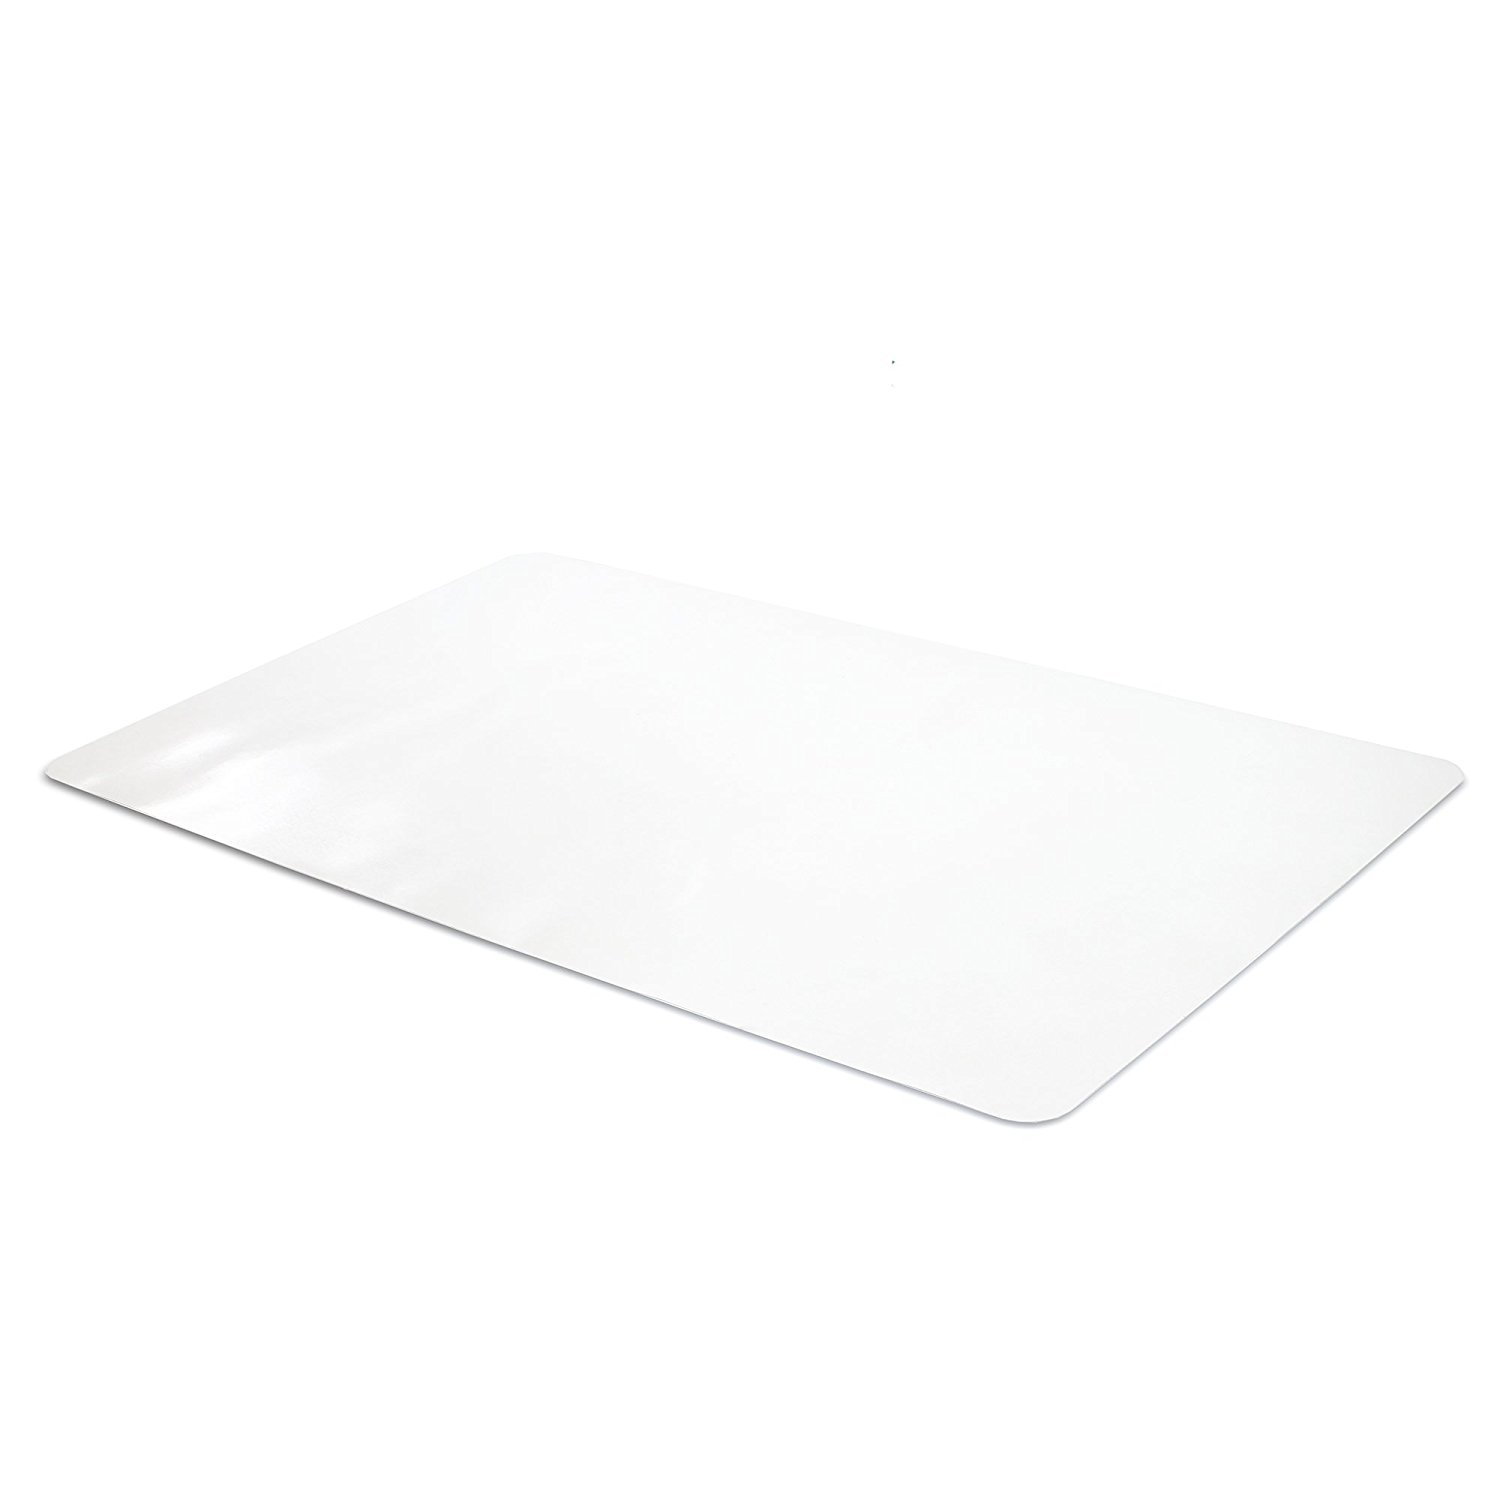 Office Desk Mat Clear Textured - 47 x 23 Inch Plastic Computer Pad for Desk by Ilyapa